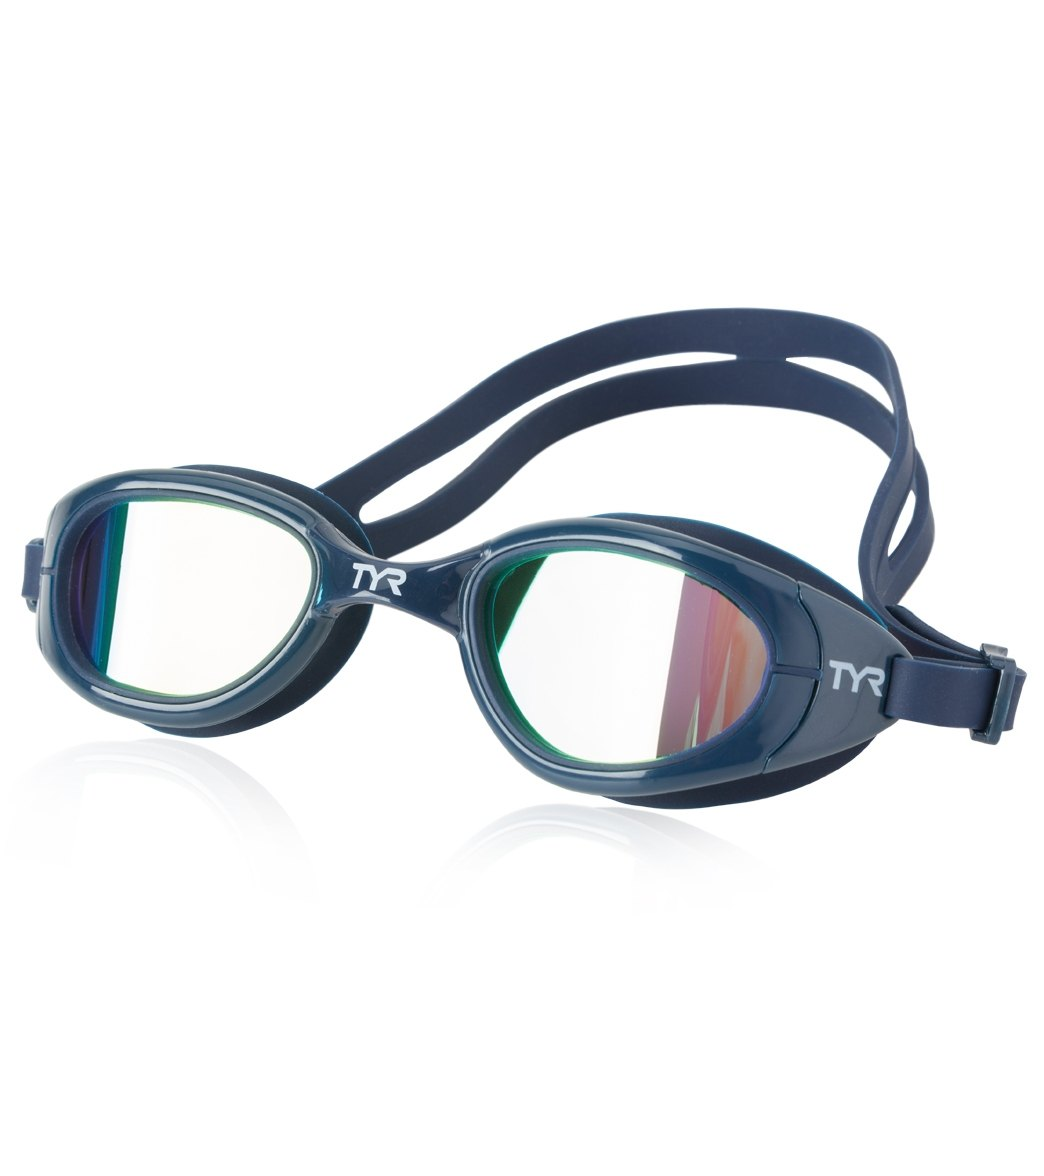 TYR Special Ops 2.0 Anti Fog Swimming Goggles